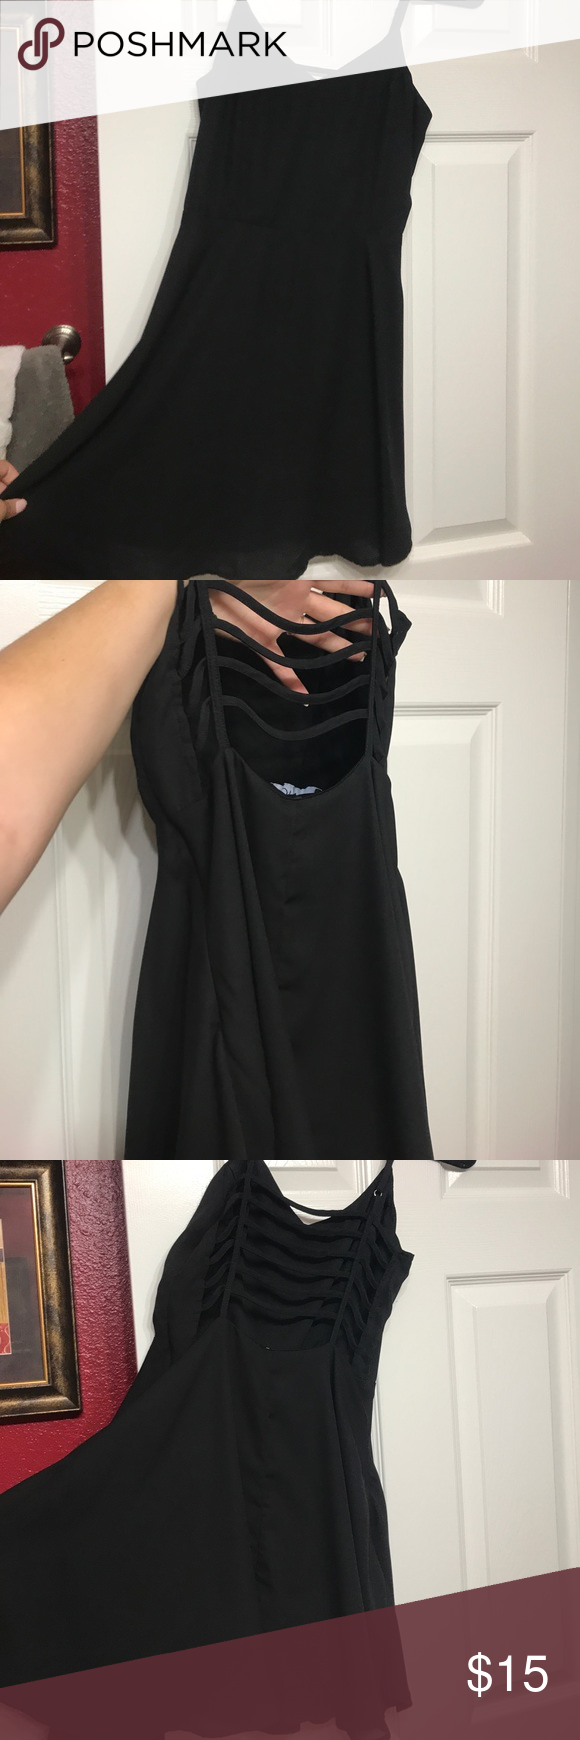 Little black dress Darling black dress never worn and just need space in closet. Open to reasonable offers ANGL Dresses Mini